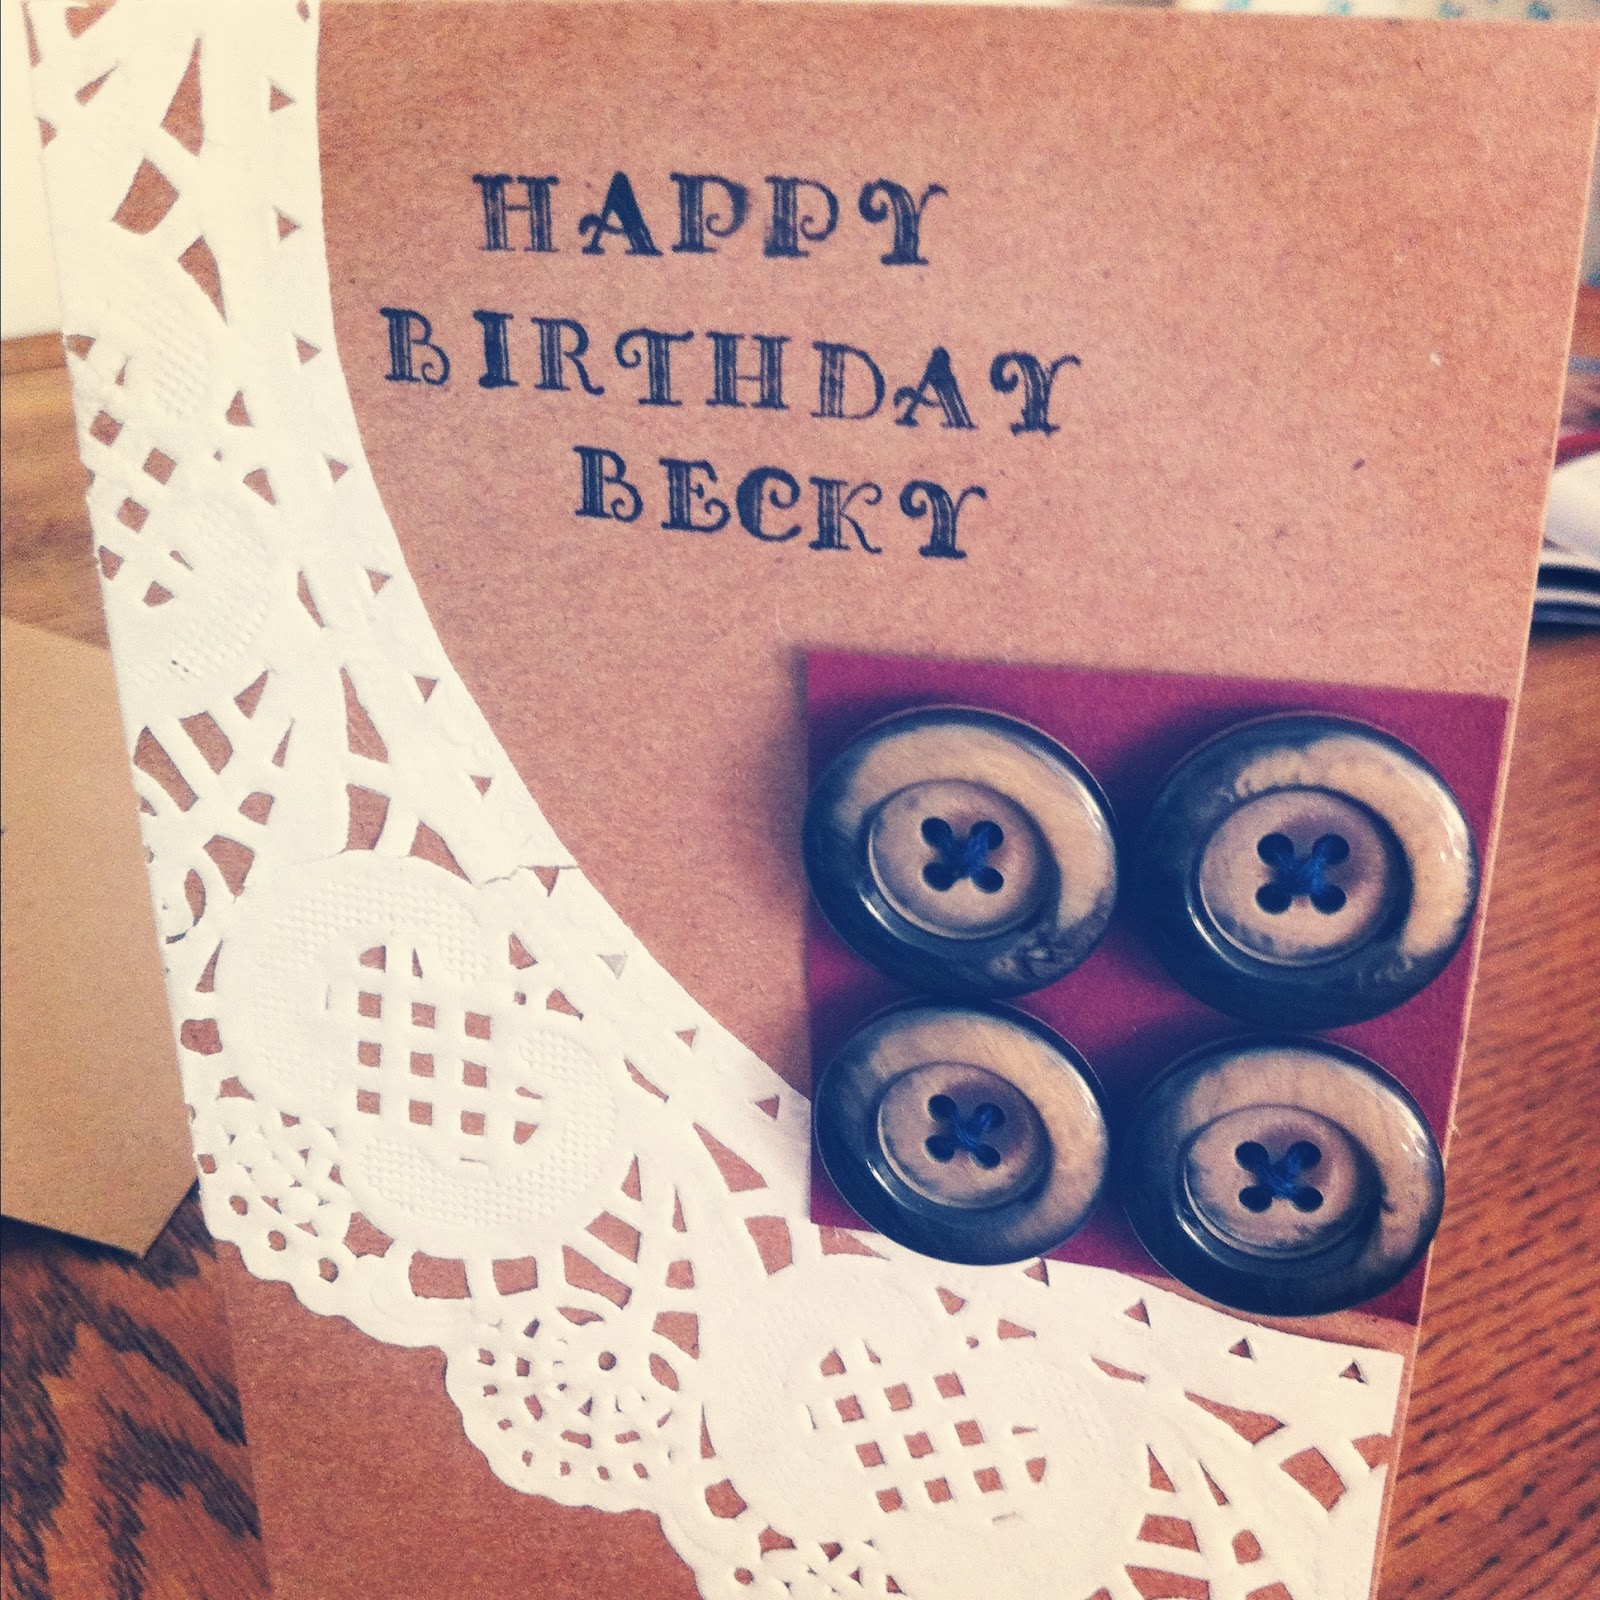 homemade birthday card ideas for friends ; Wonderful-DIY-Happy-Birthday-Greeting-Card-Ideas-for-Friends-5